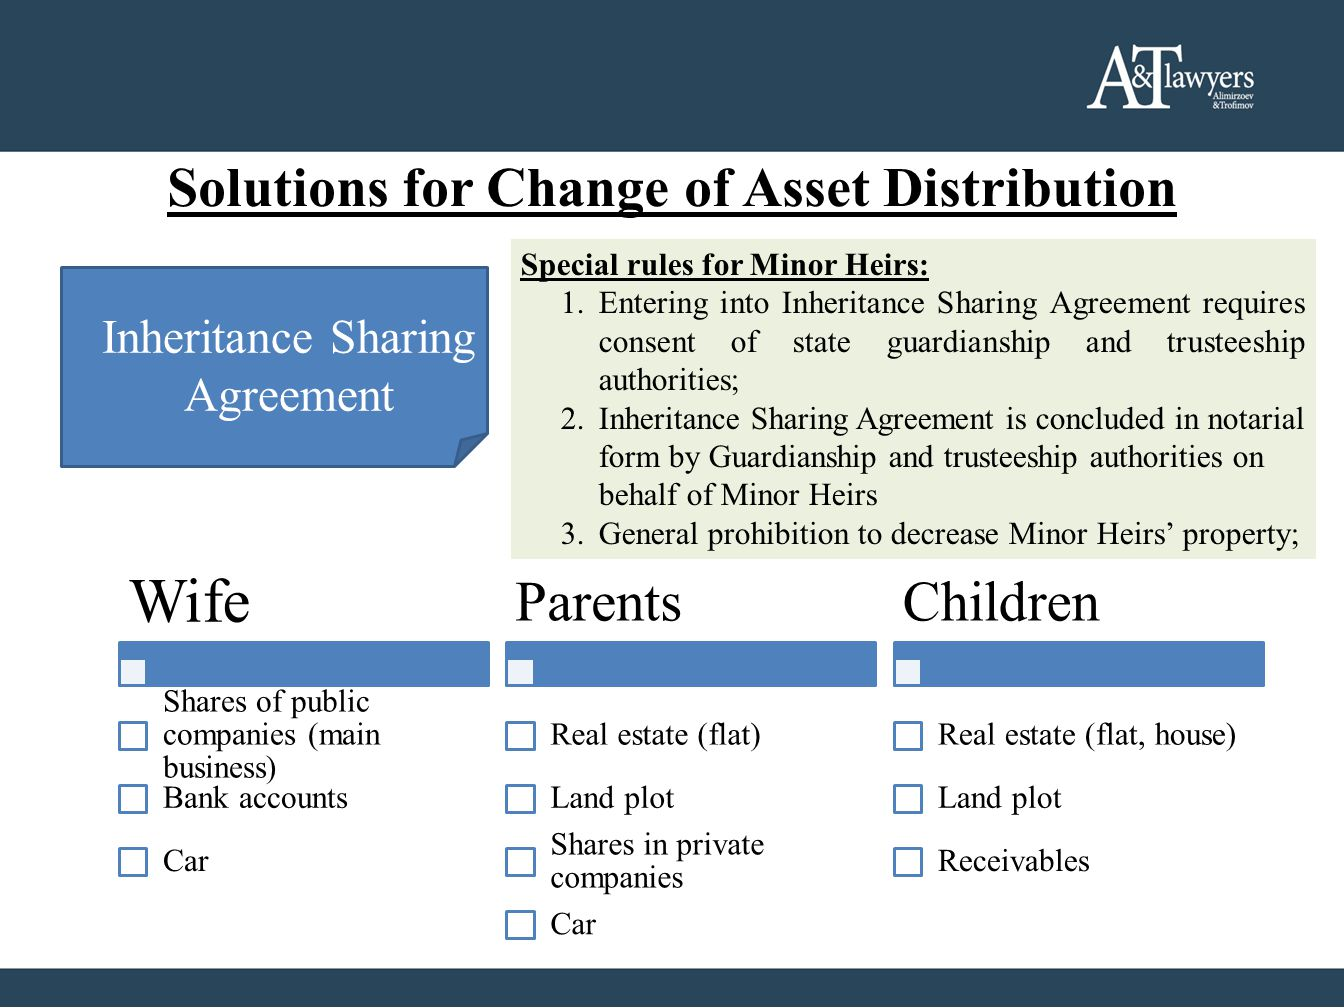 Solutions for Change of Asset Distribution No Will Inheritance Sharing Agreement Special rules for Minor Heirs: 1.Entering into Inheritance Sharing Agreement requires consent of state guardianship and trusteeship authorities; 2.Inheritance Sharing Agreement is concluded in notarial form by Guardianship and trusteeship authorities on behalf of Minor Heirs 3.General prohibition to decrease Minor Heirs property; Wife Shares of public companies (main business) Bank accounts Car Parents Real estate (flat) Land plot Shares in private companies Car Children Real estate (flat, house) Land plot Receivables